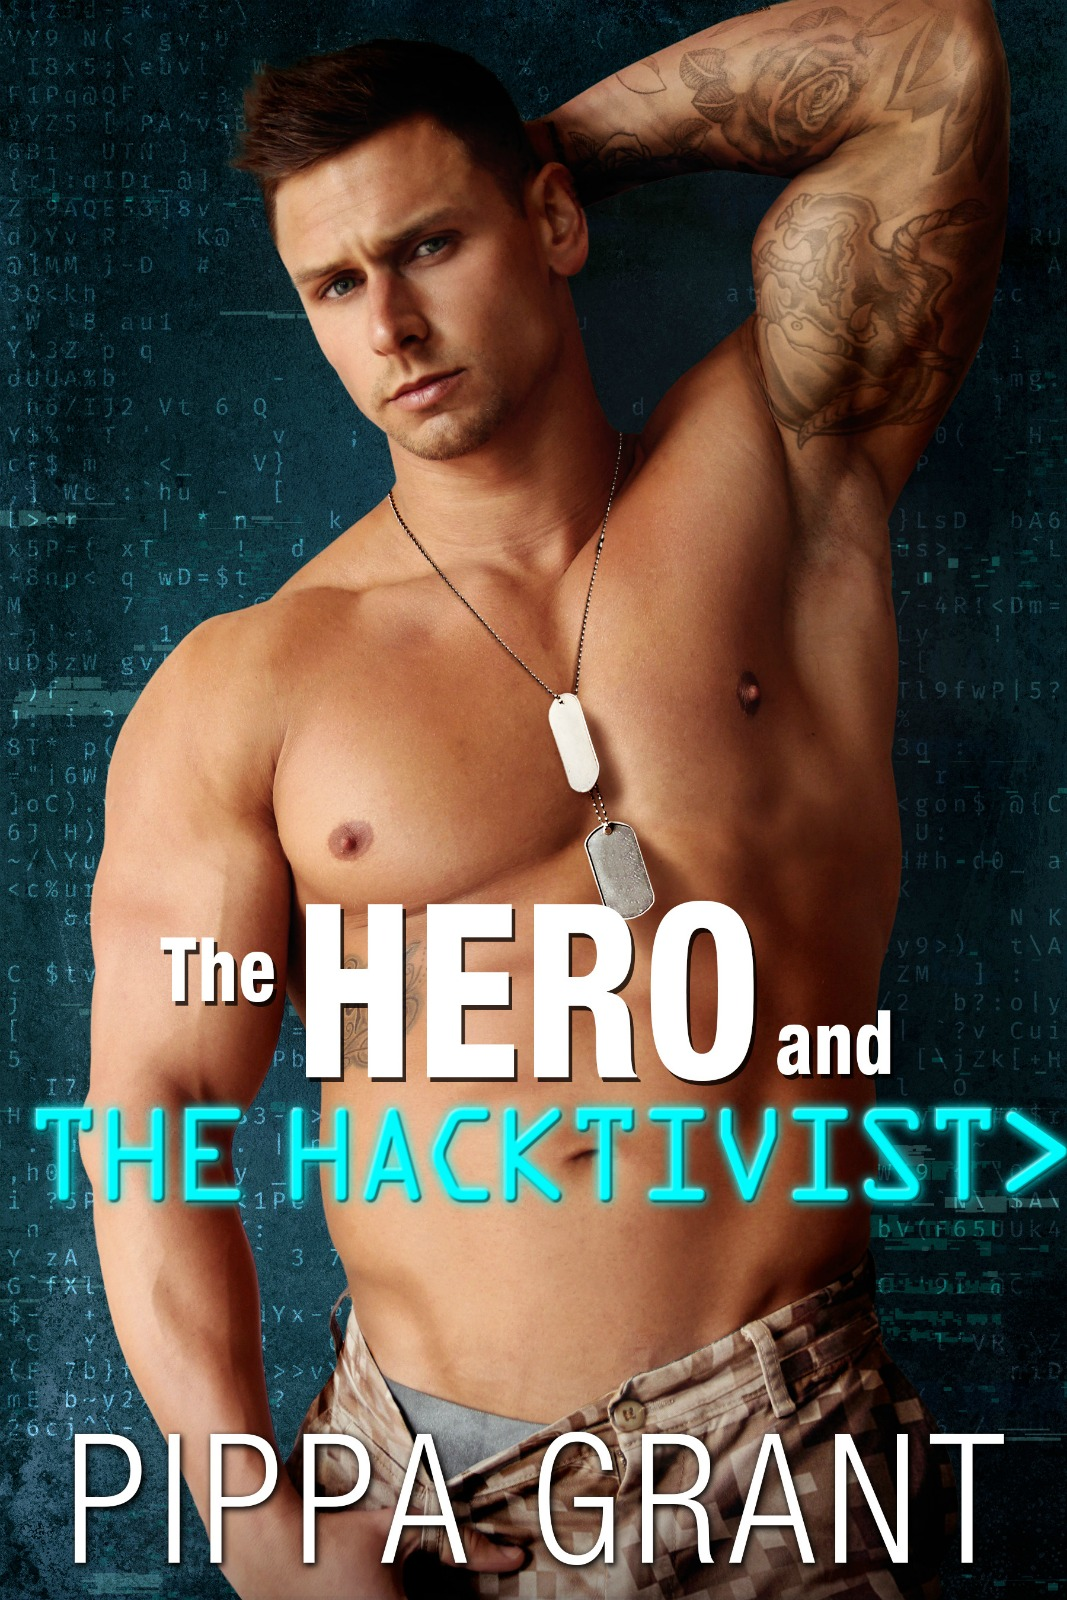 Review: The Hero and the Hacktivist by Pippa Grant